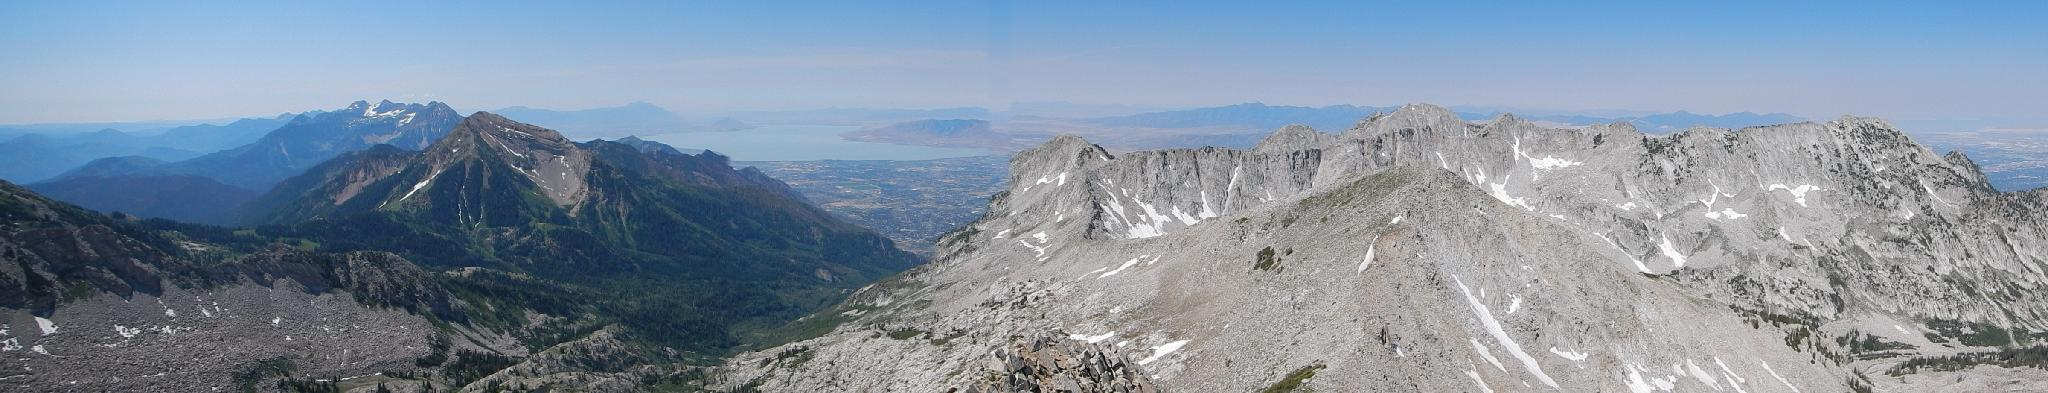 South and West Panorama. Timp in the far background, Box Elder, and Lone Peak.